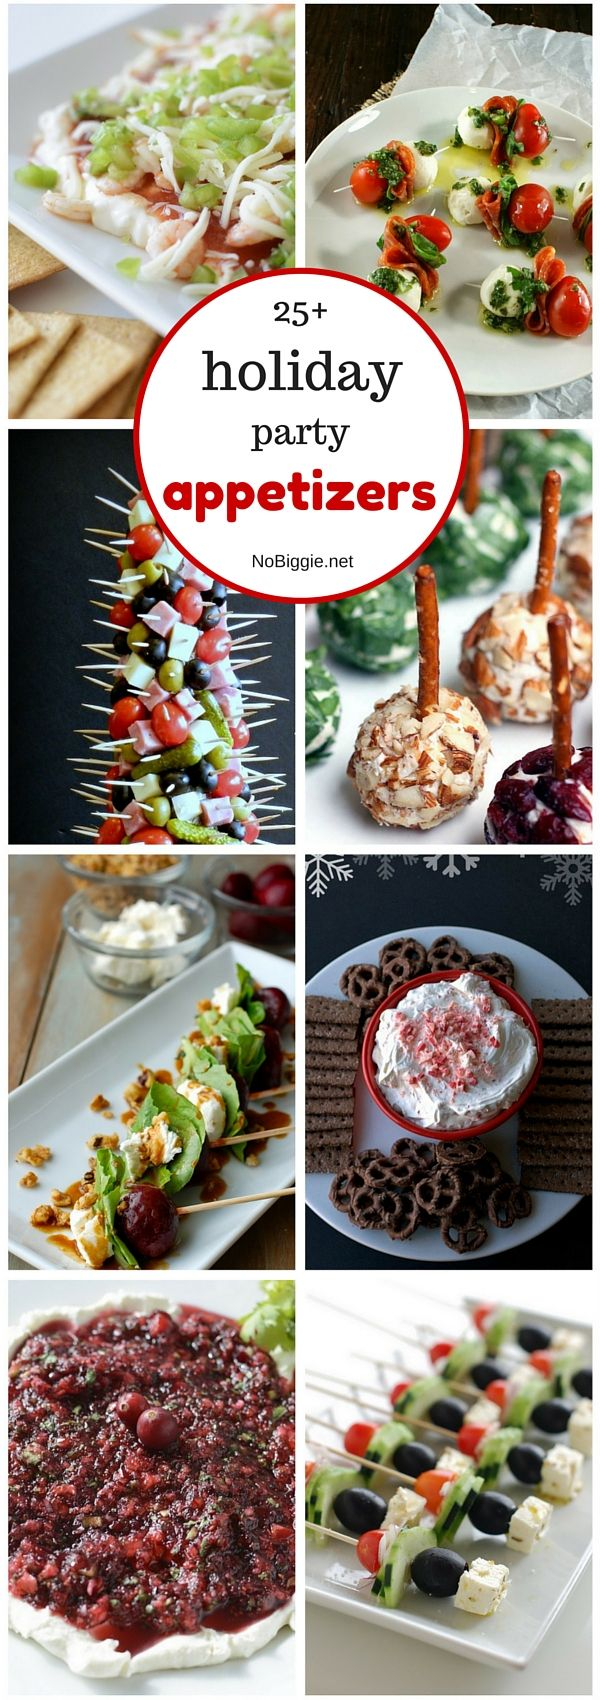 25+ holiday party appetizers